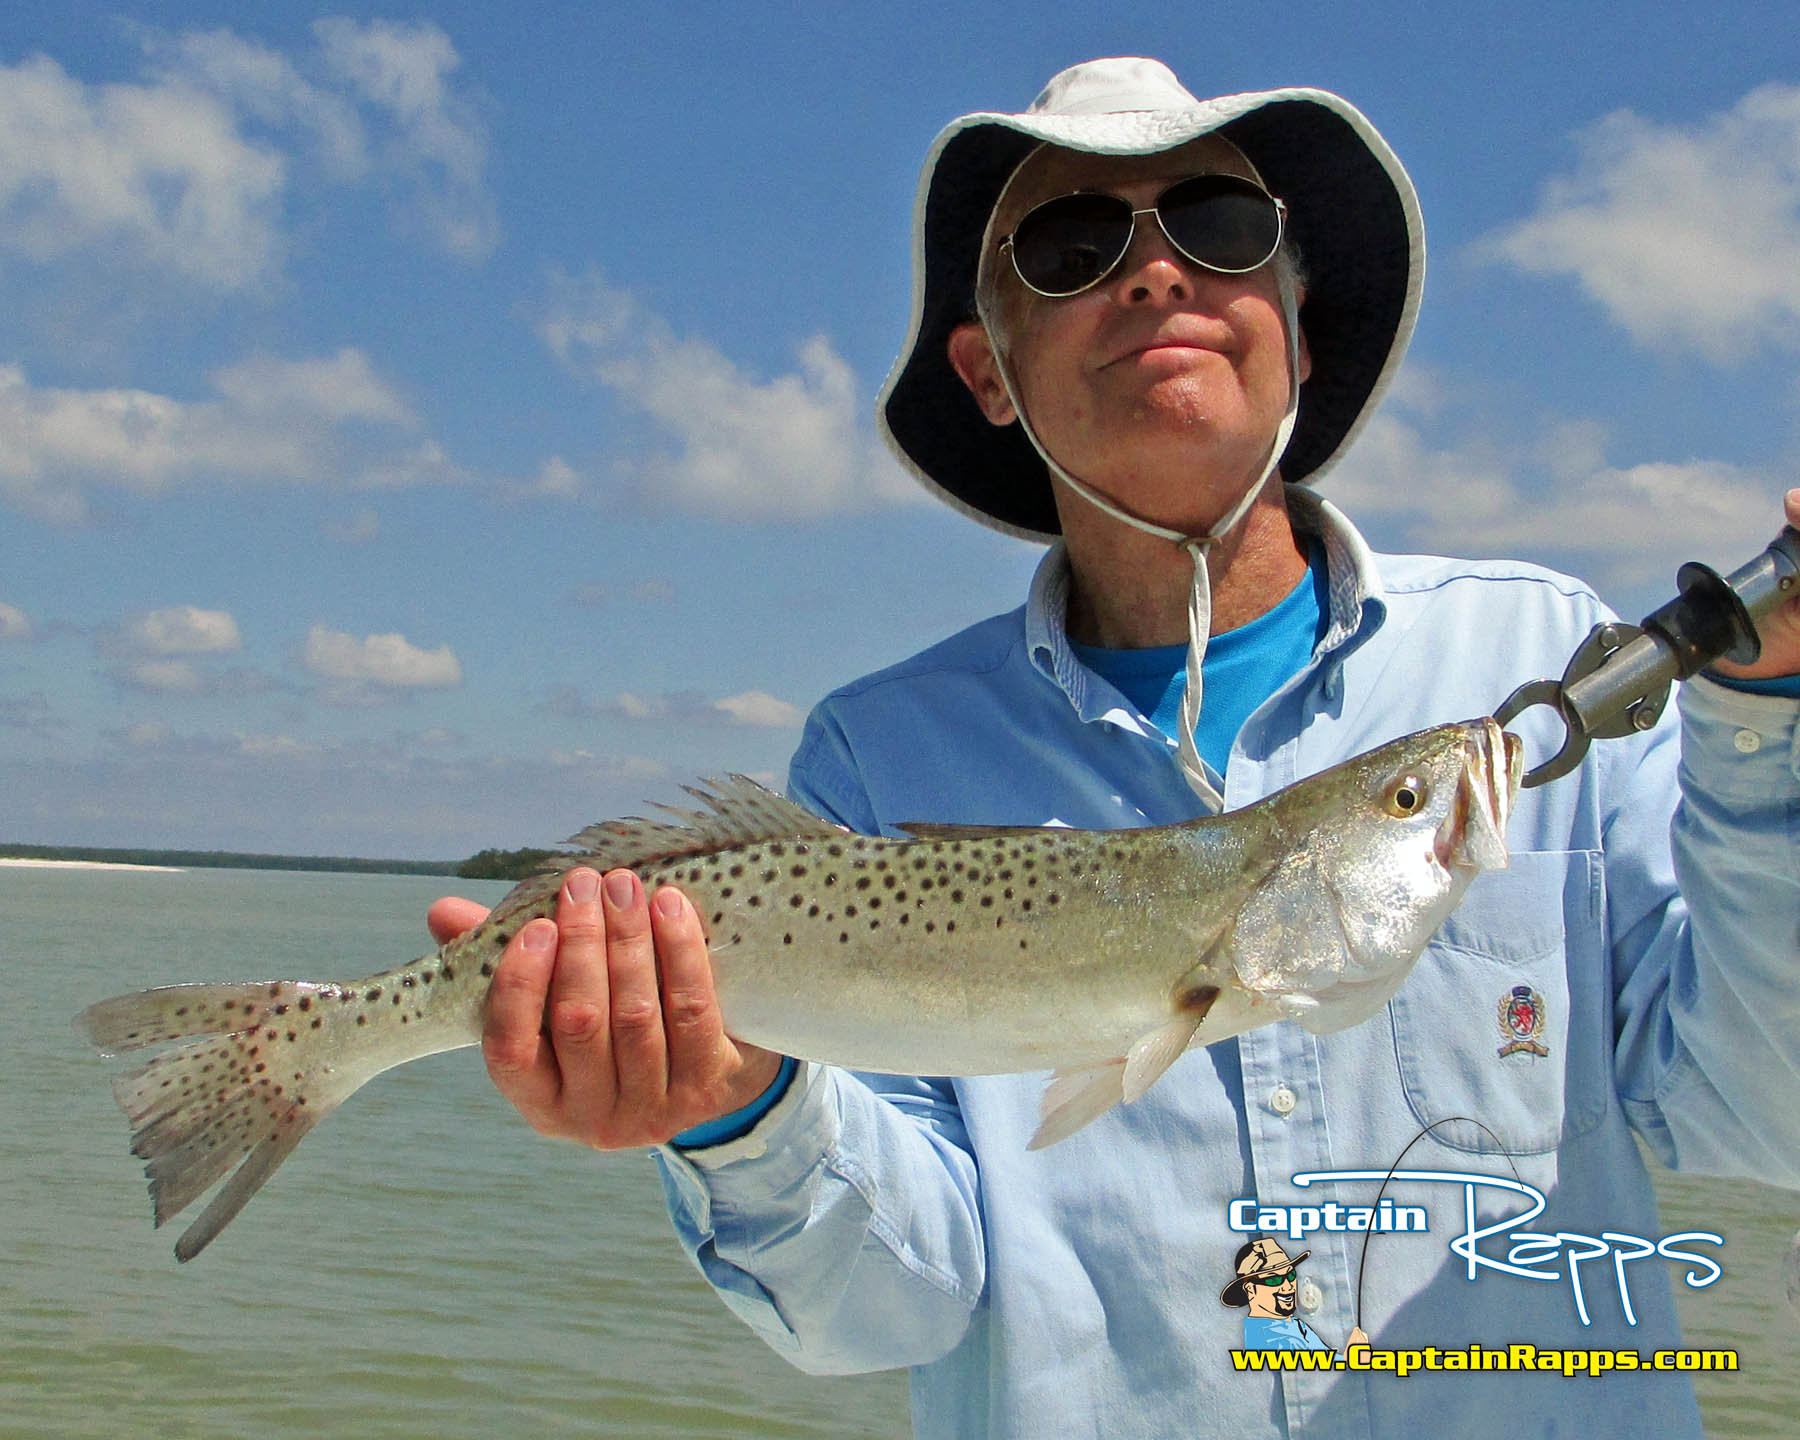 ted trout captain rapps everglades city chokoloskee fishing guide